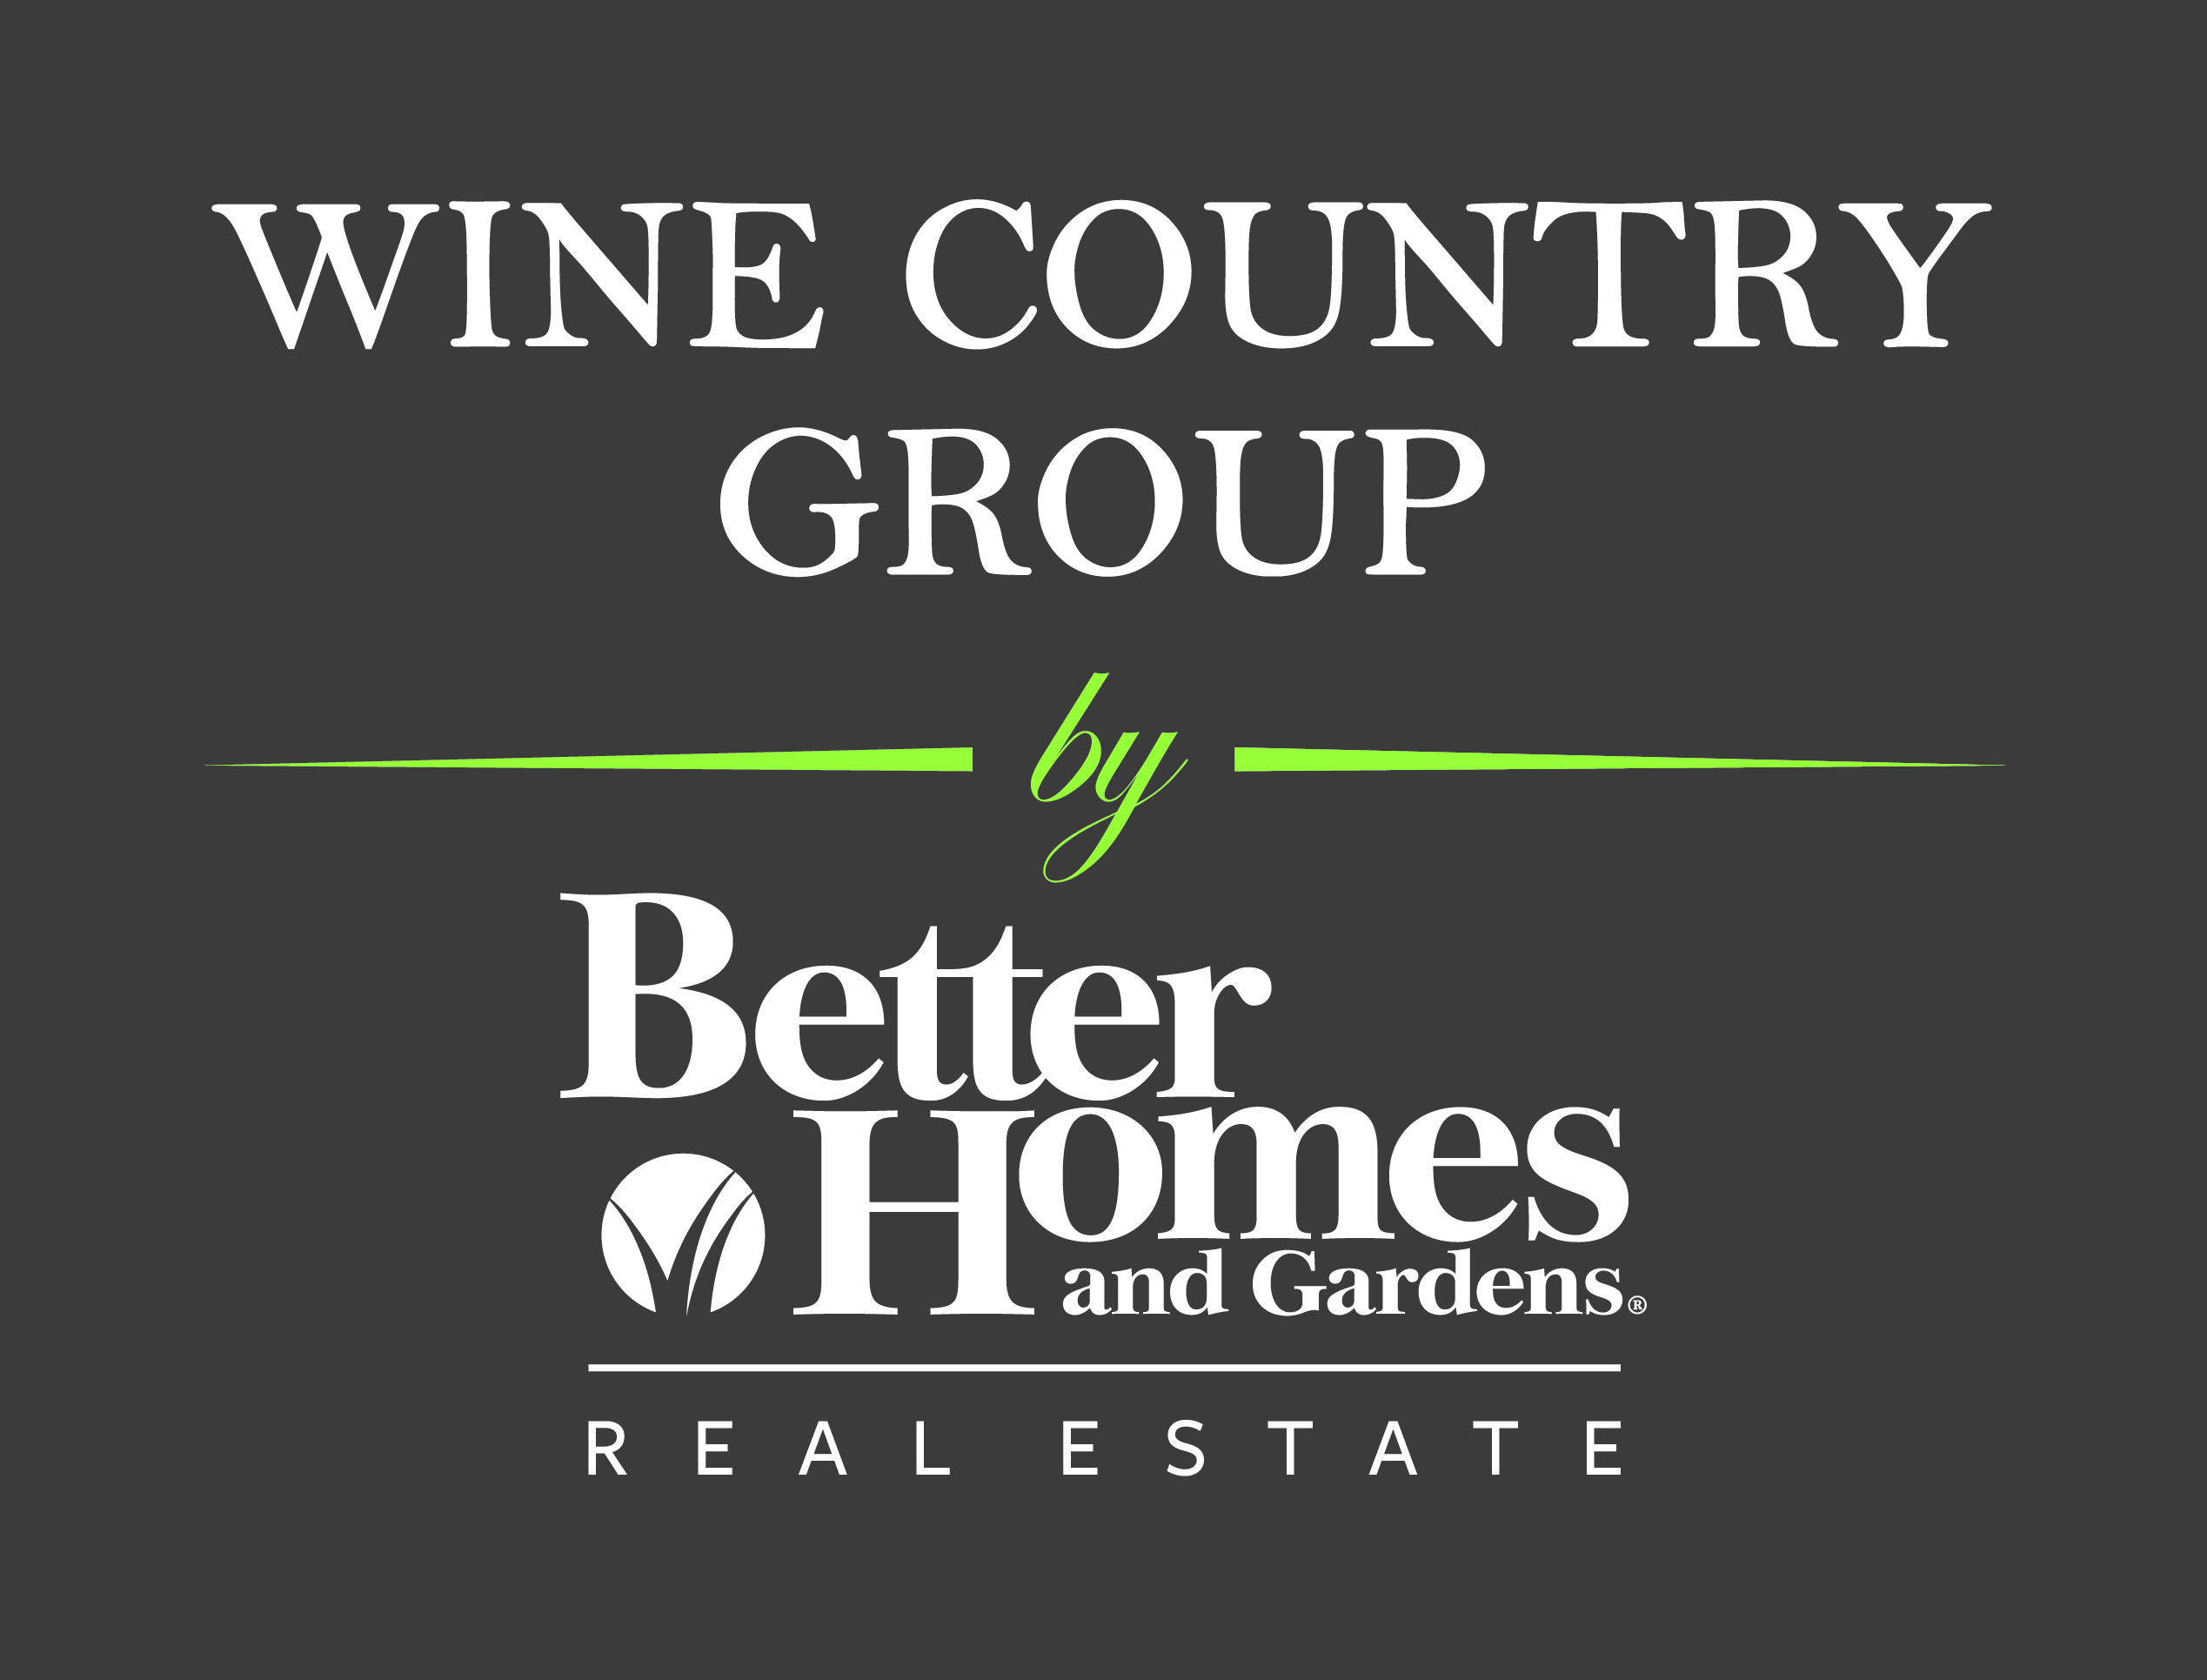 Wine Country Group by Better Homes  Gardens  Mason